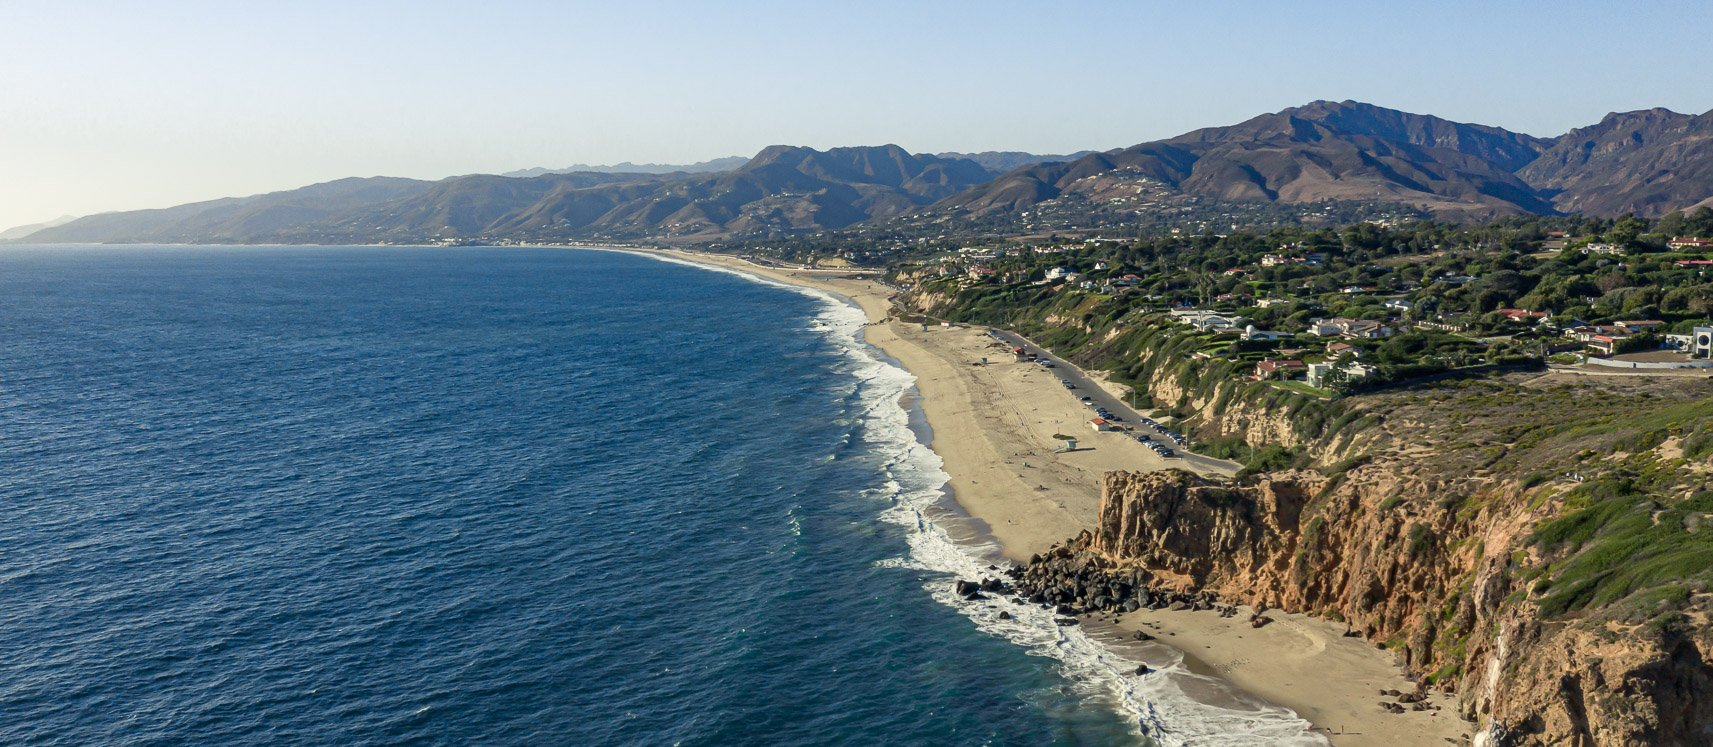 Panoramic aerial photo of California Coast in Malibu with the beach, ocean, rocks, and suburbs in view.